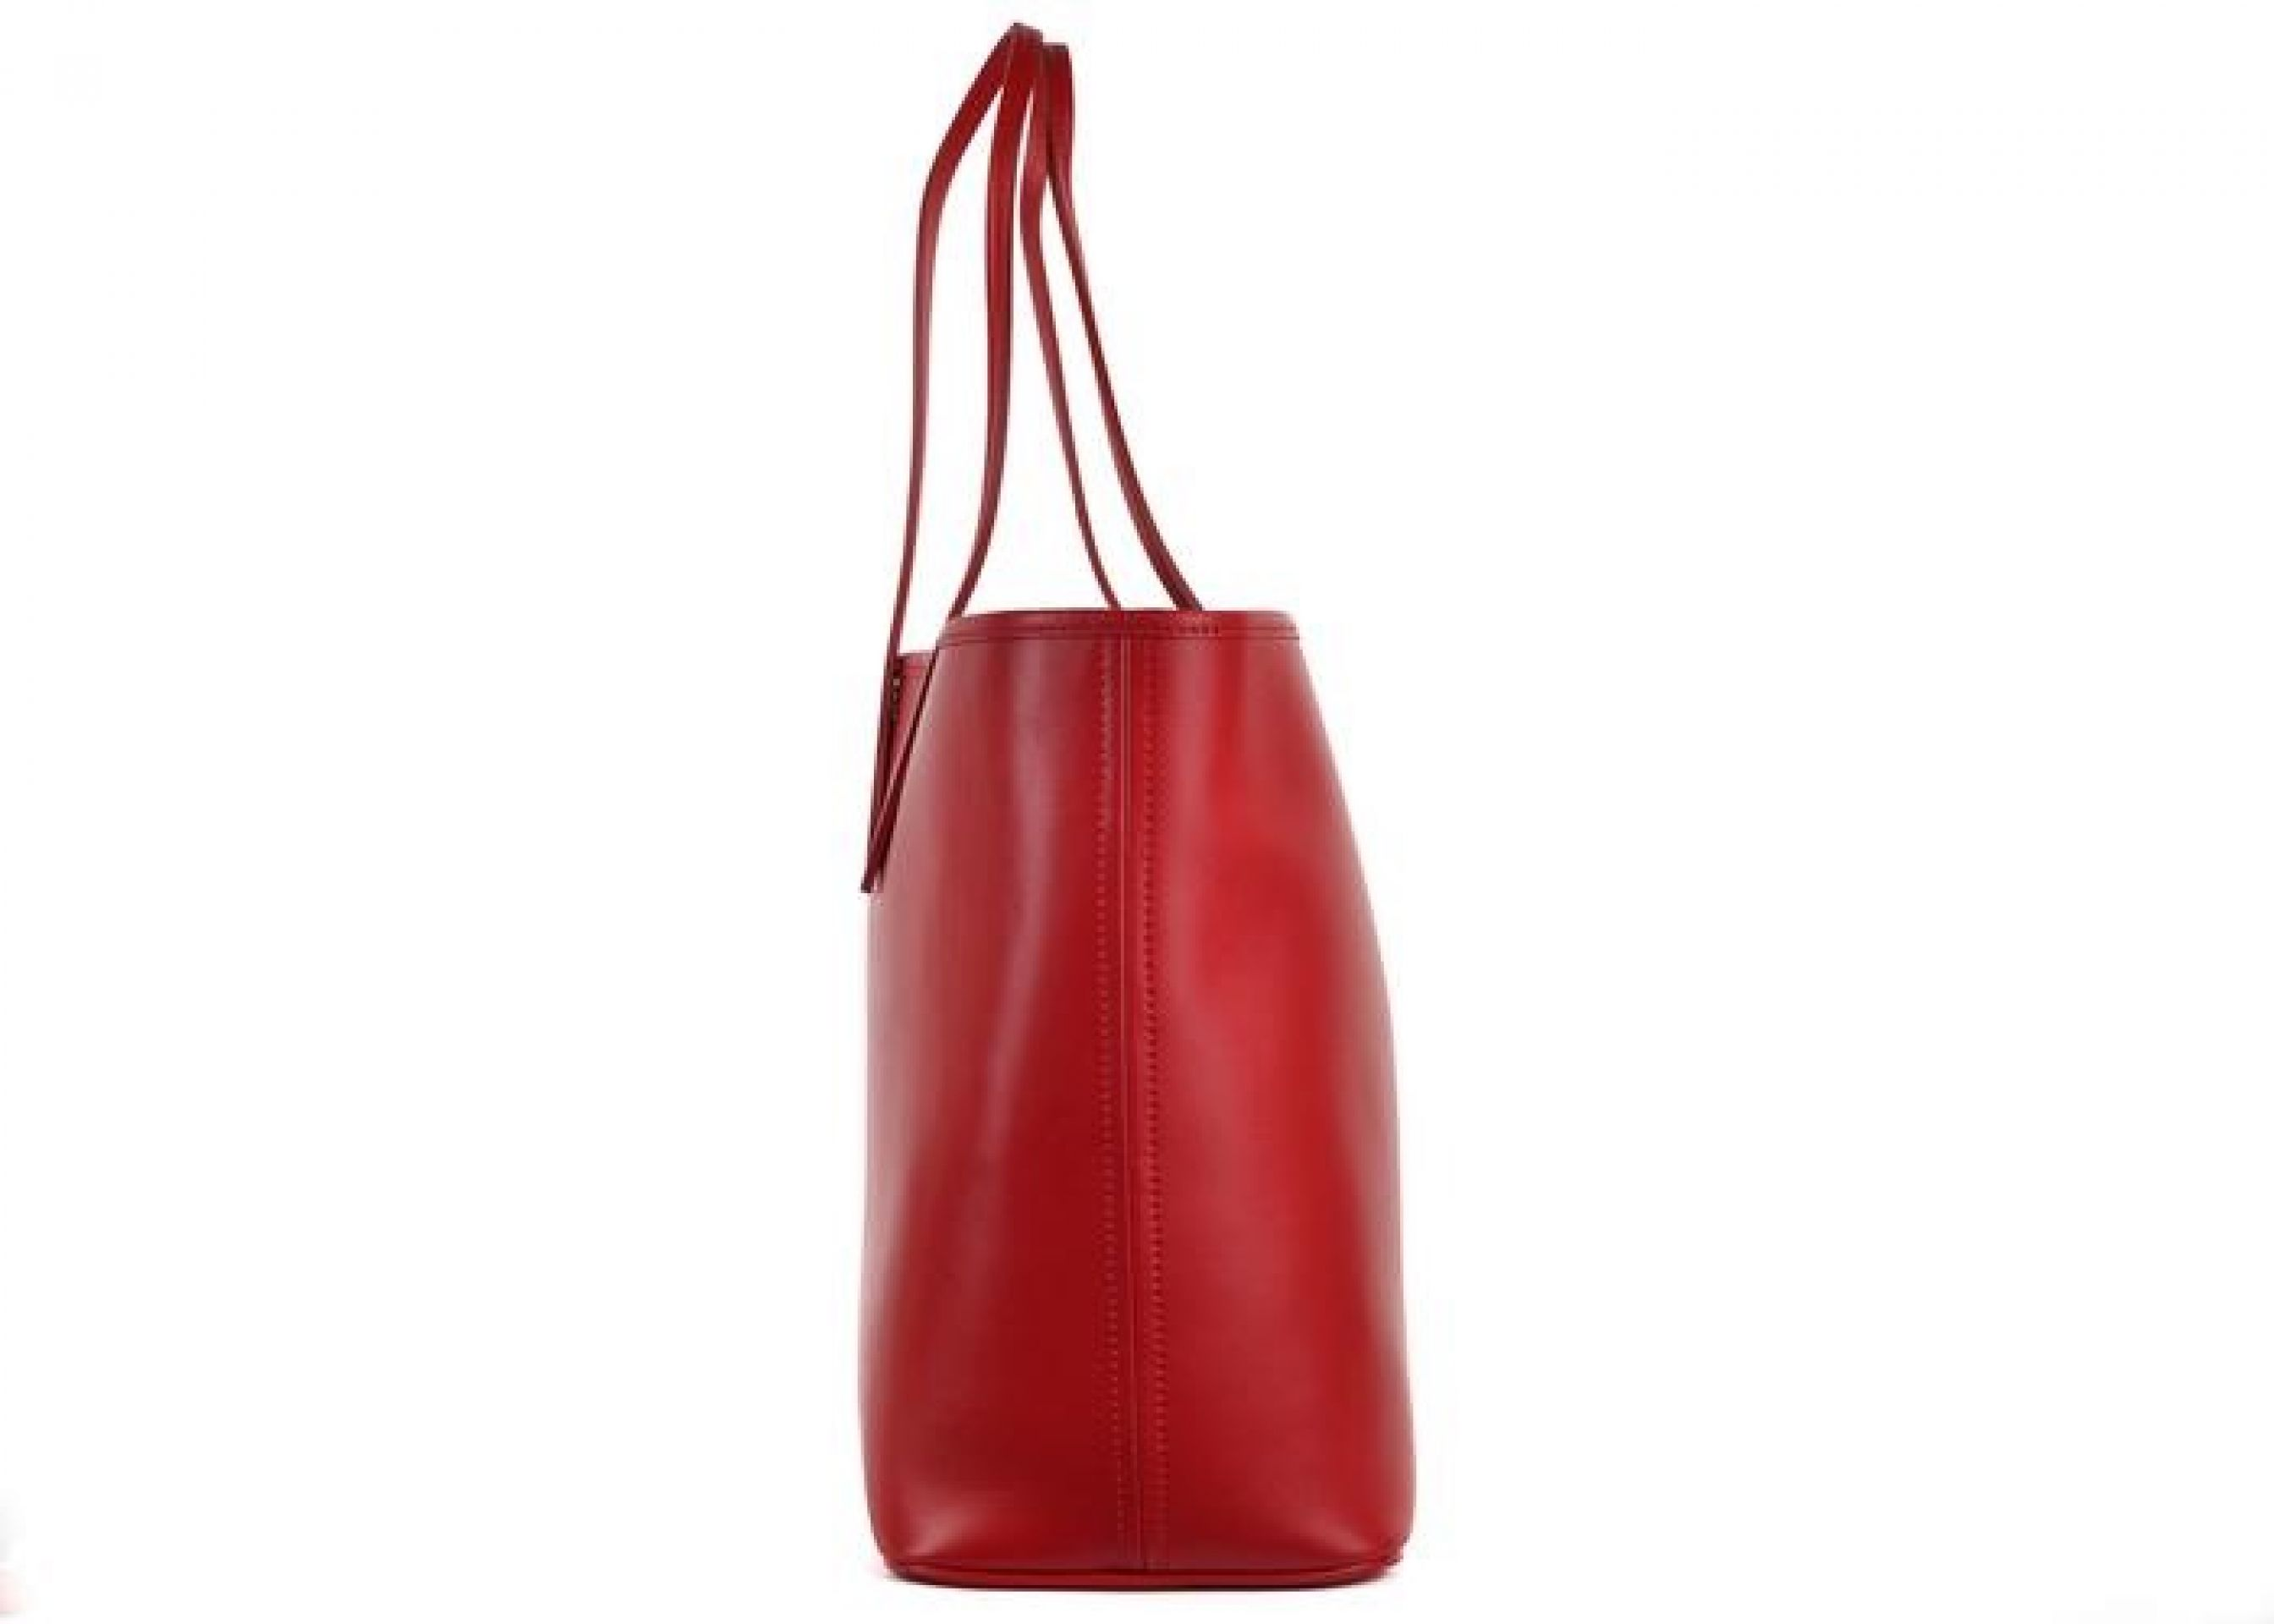 ROBERTO CAVALLI FIRENZE RED LARGE LEATHER SHOPPING TOTE BAG